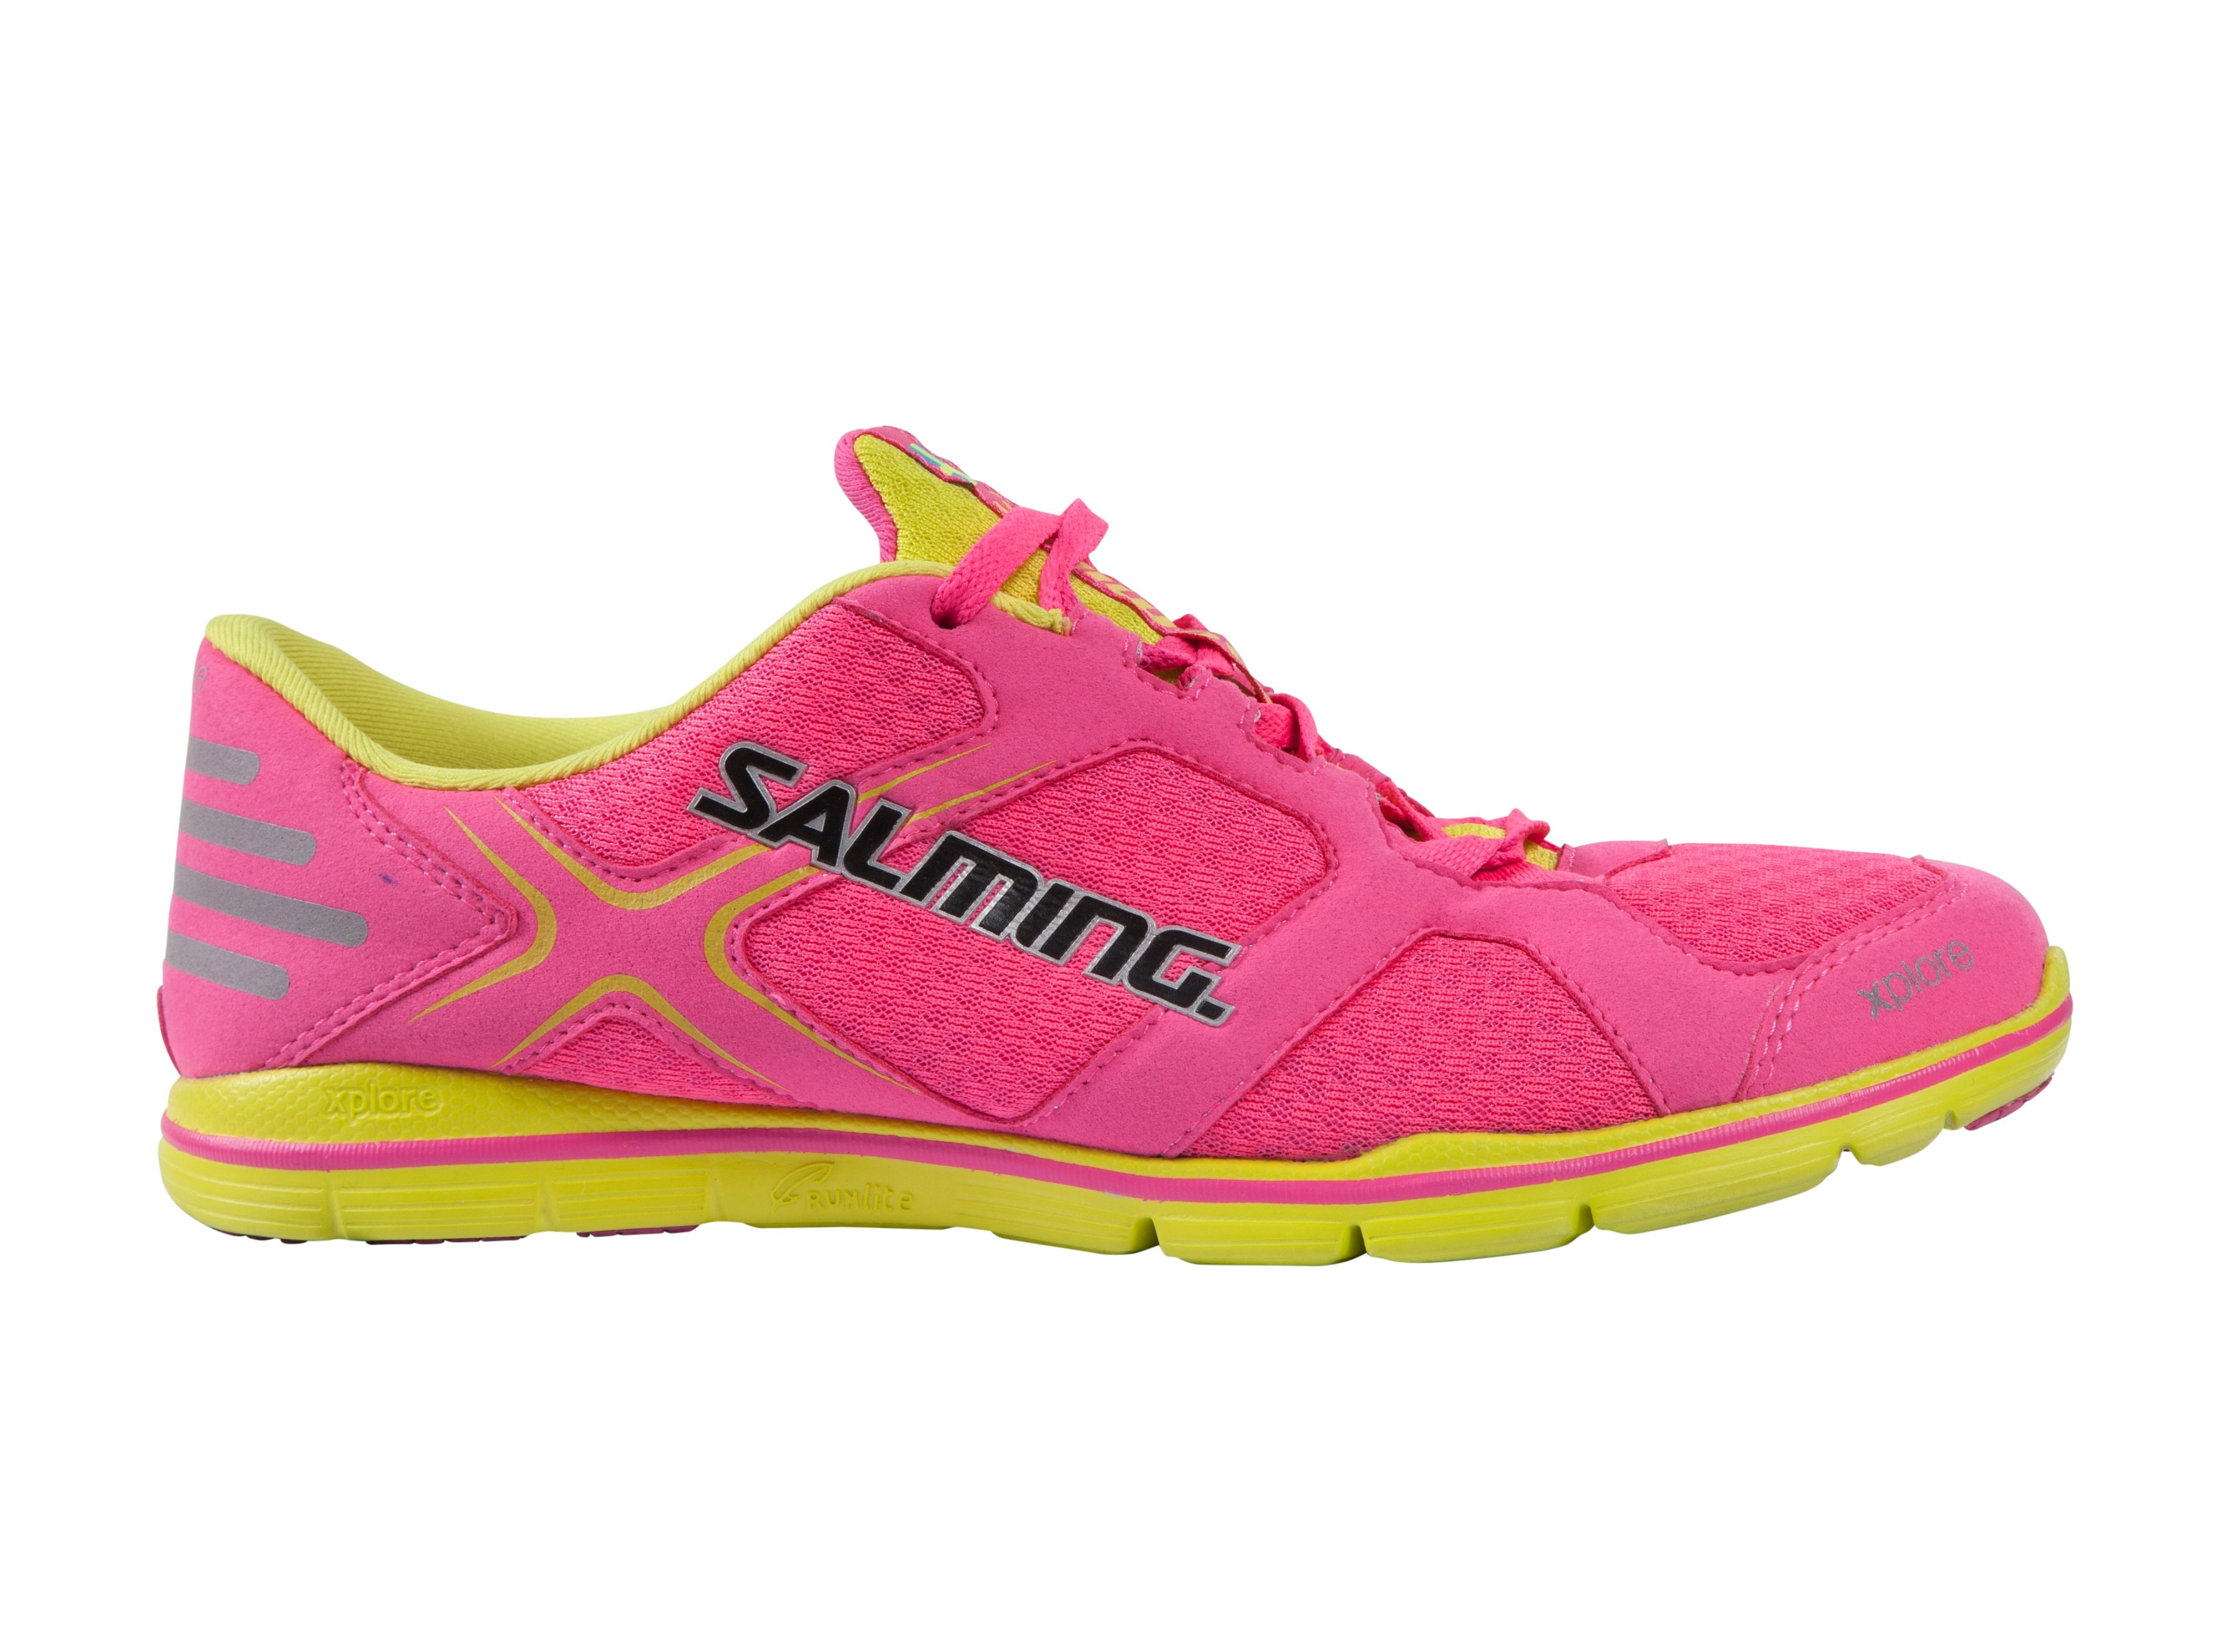 Salming Xplore Shoe 2.0 Women UK 4,5 / US 6,5 / EUR 37 a 1/3 / CM 23,5